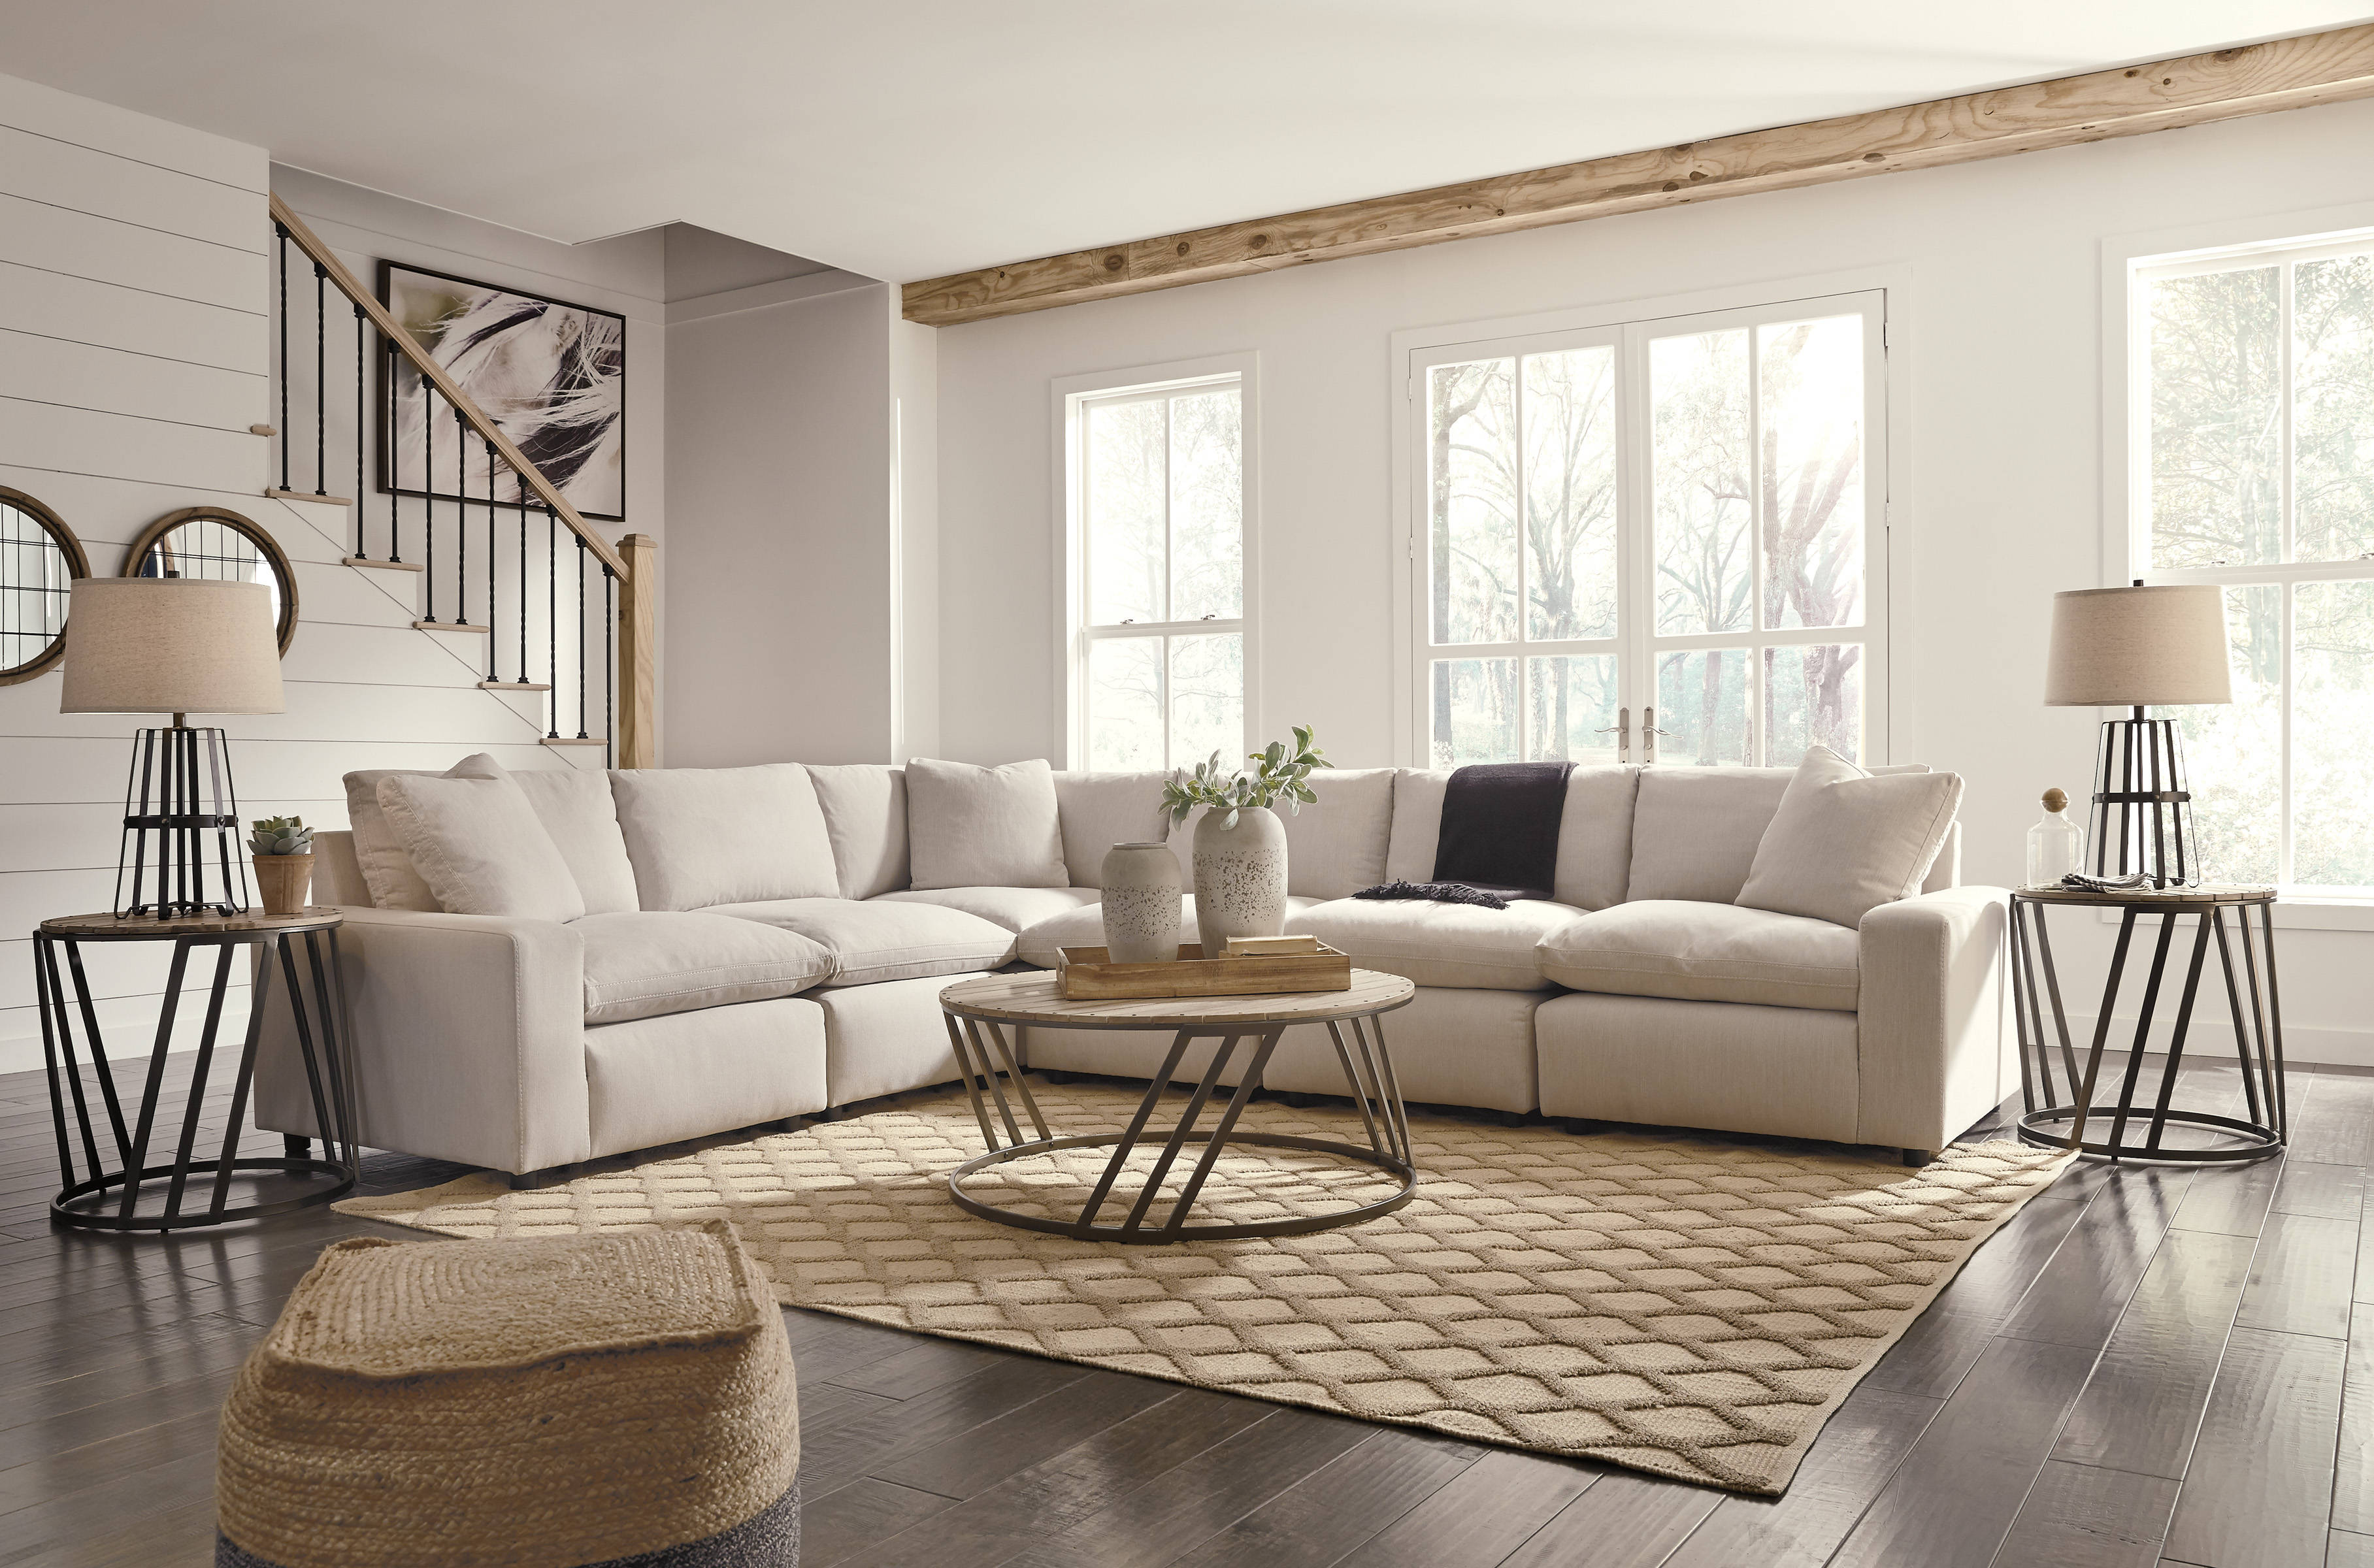 Ashley Furniture Savesto Ivory 6pc Sectional The Classy Home